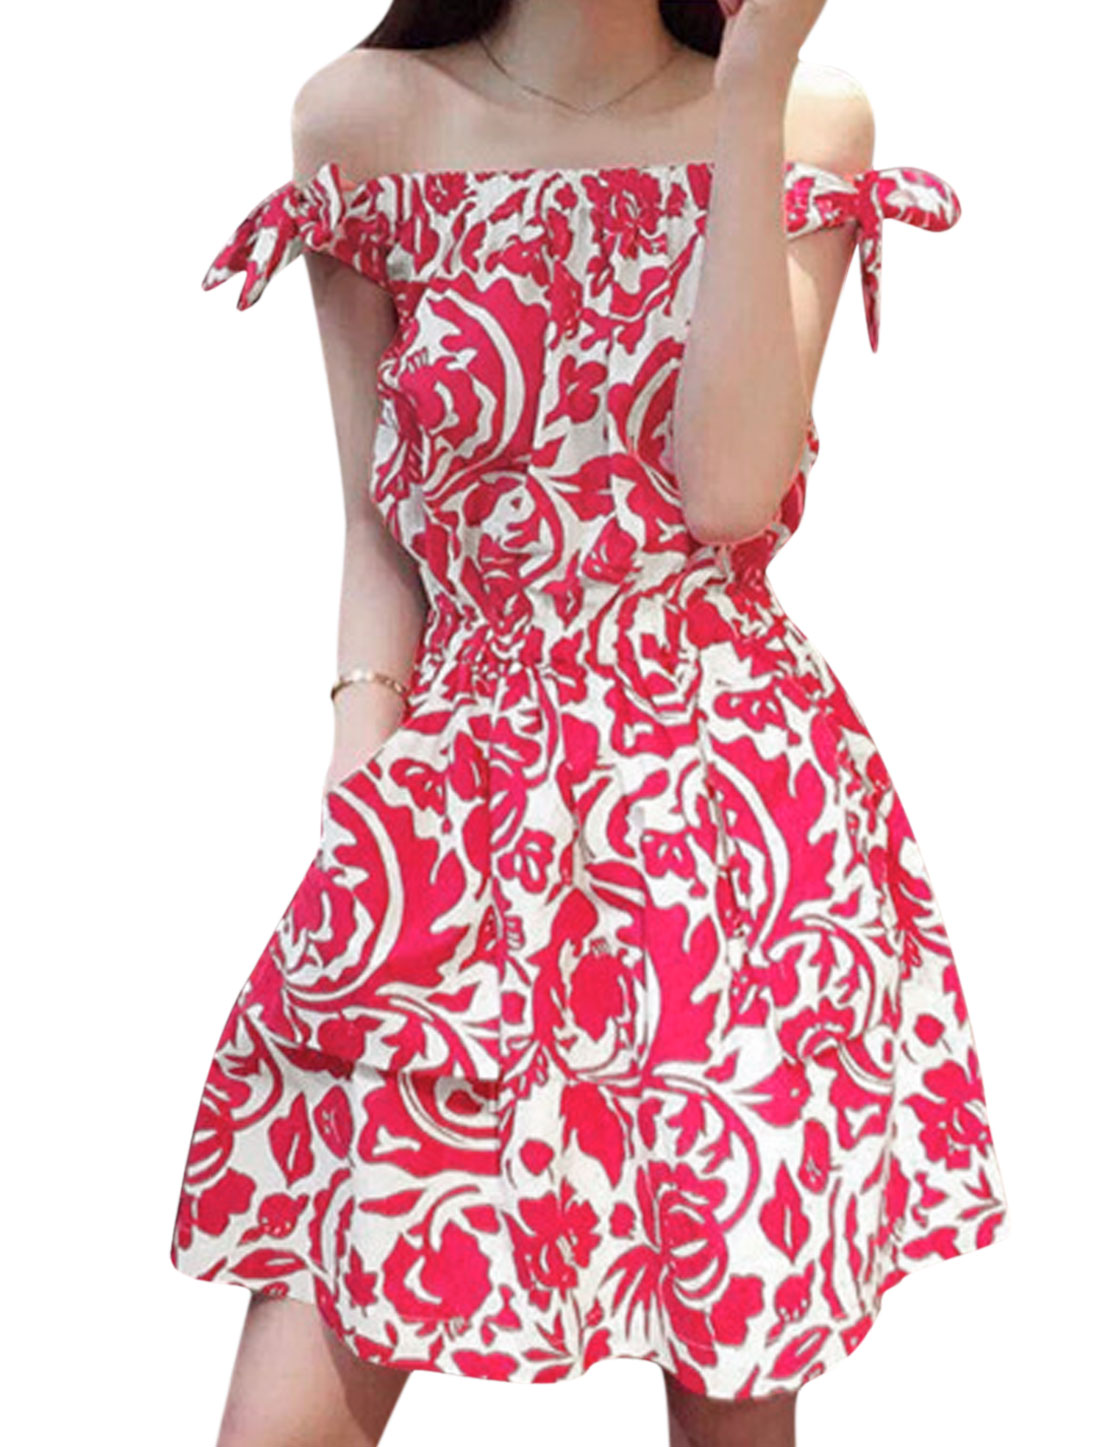 Woman Floral Prints Off-the-Shoulder Unlined Fit and Flare Dress White Fuchsia XS